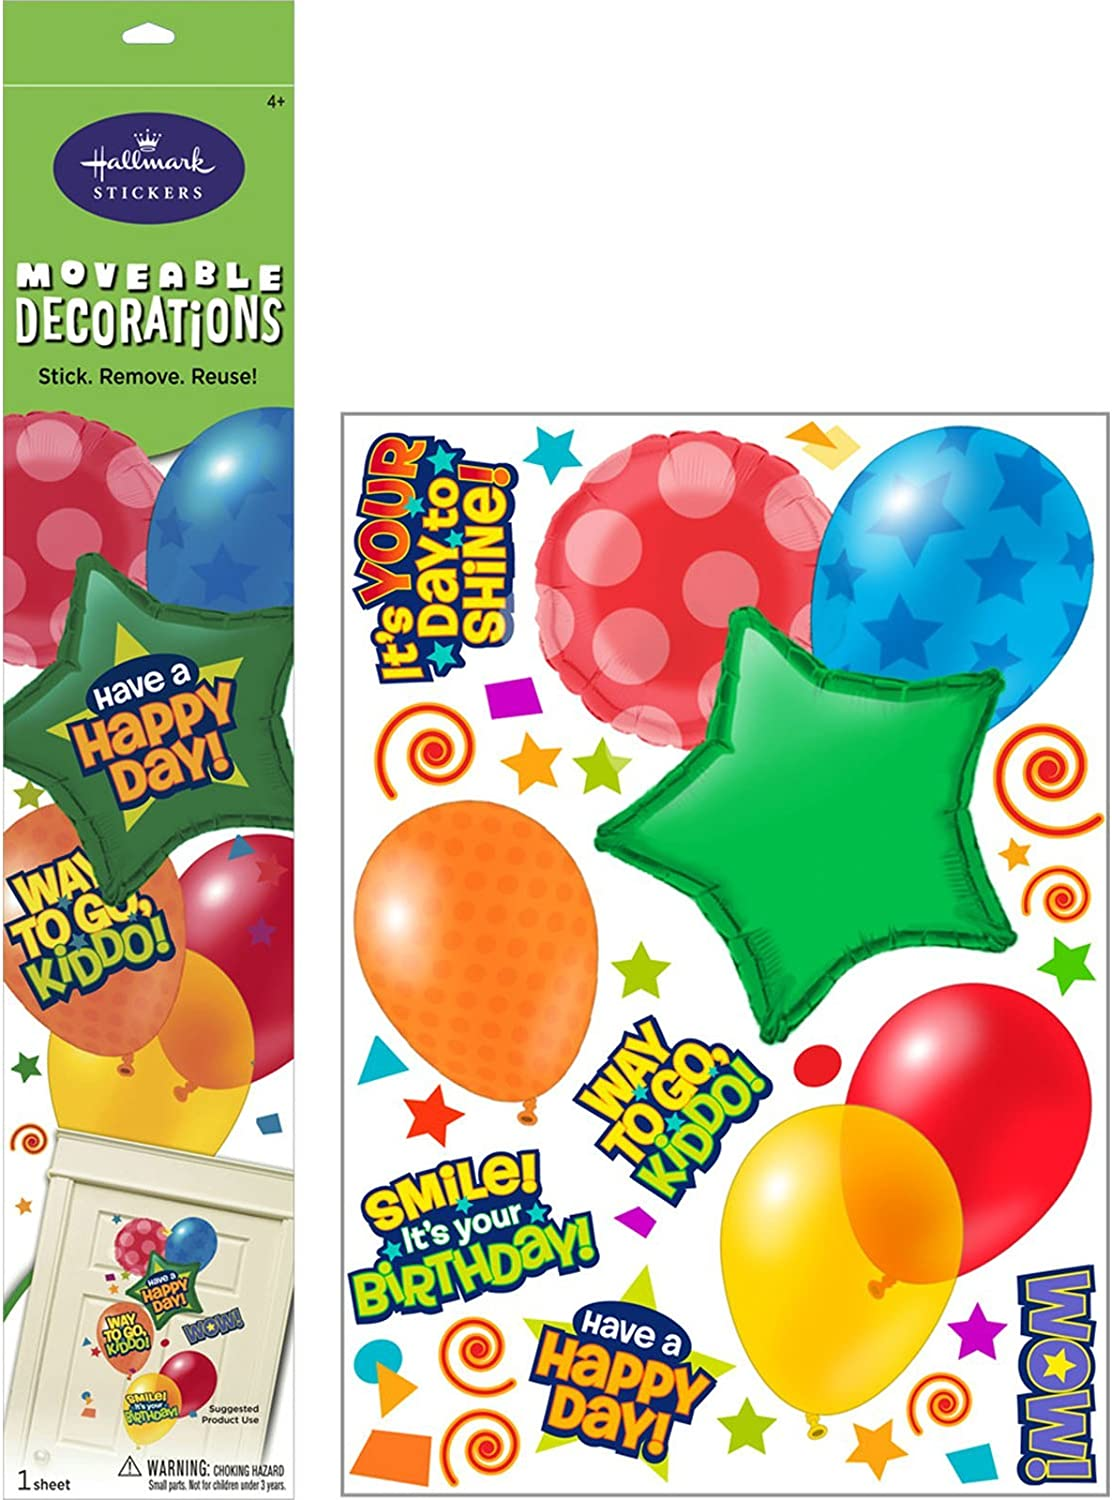 Balloons Removable Wall Decorations Party Accessory by Hallmark